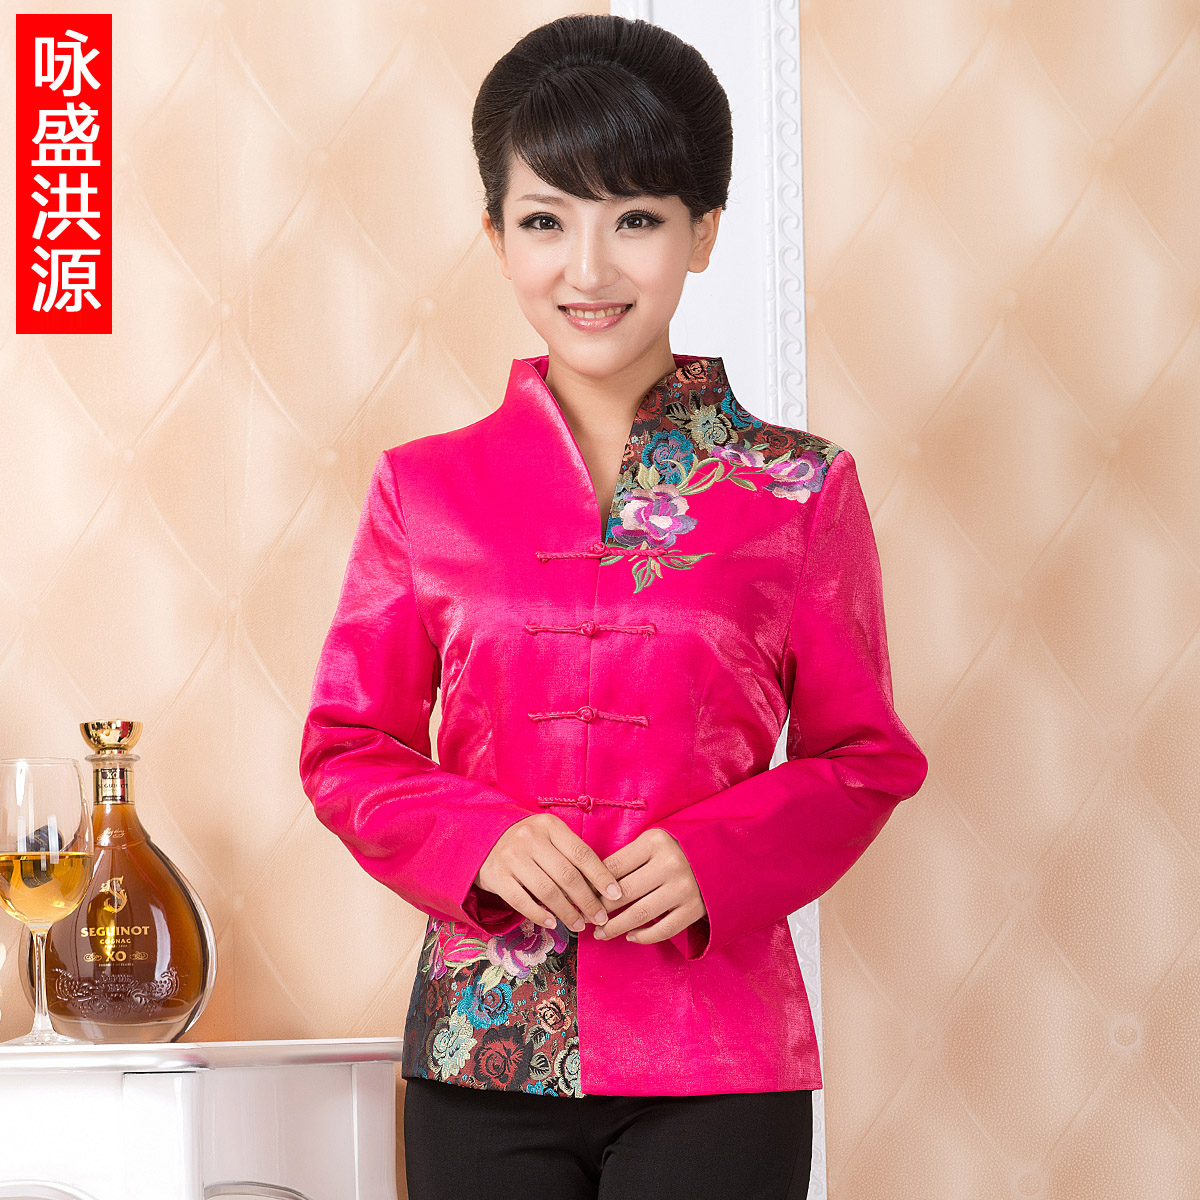 Women's spring and autumn costume ladies blouse long sleeve coat chinese teahouse teahouse overalls fall and winter clothes catering equipment